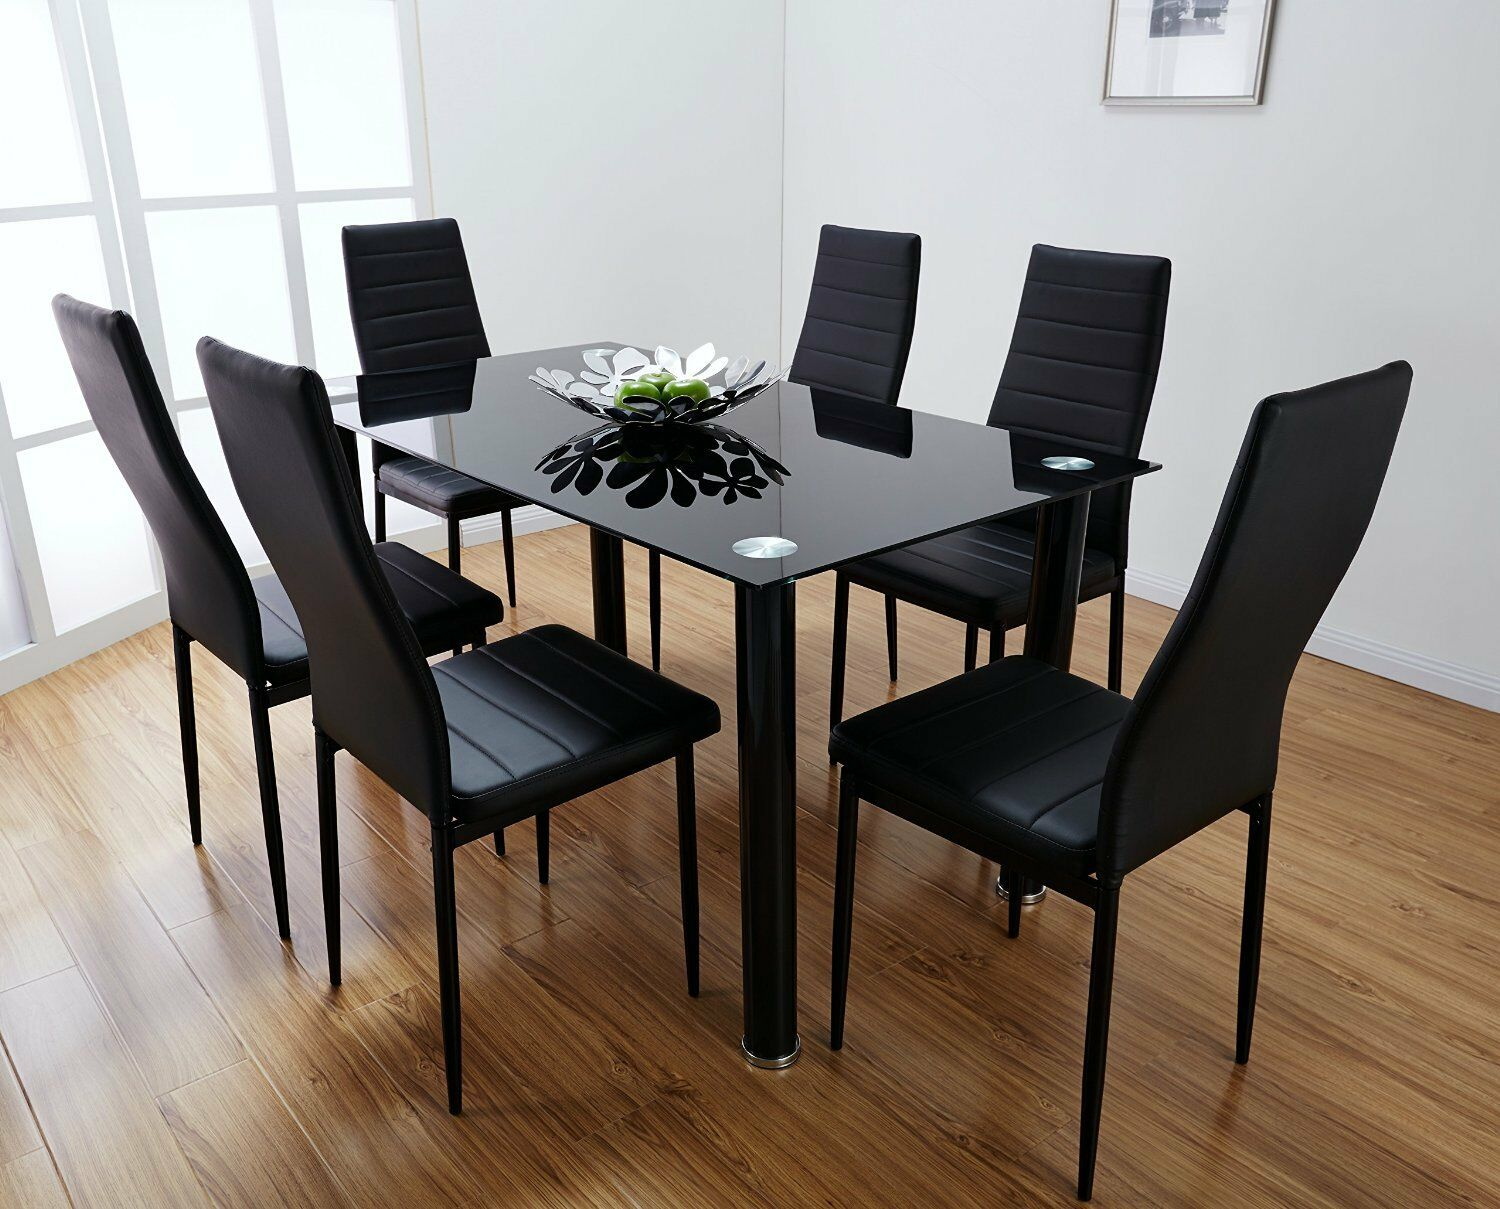 Lunar rectangle glass dining table set and 6 black faux Glass dining table